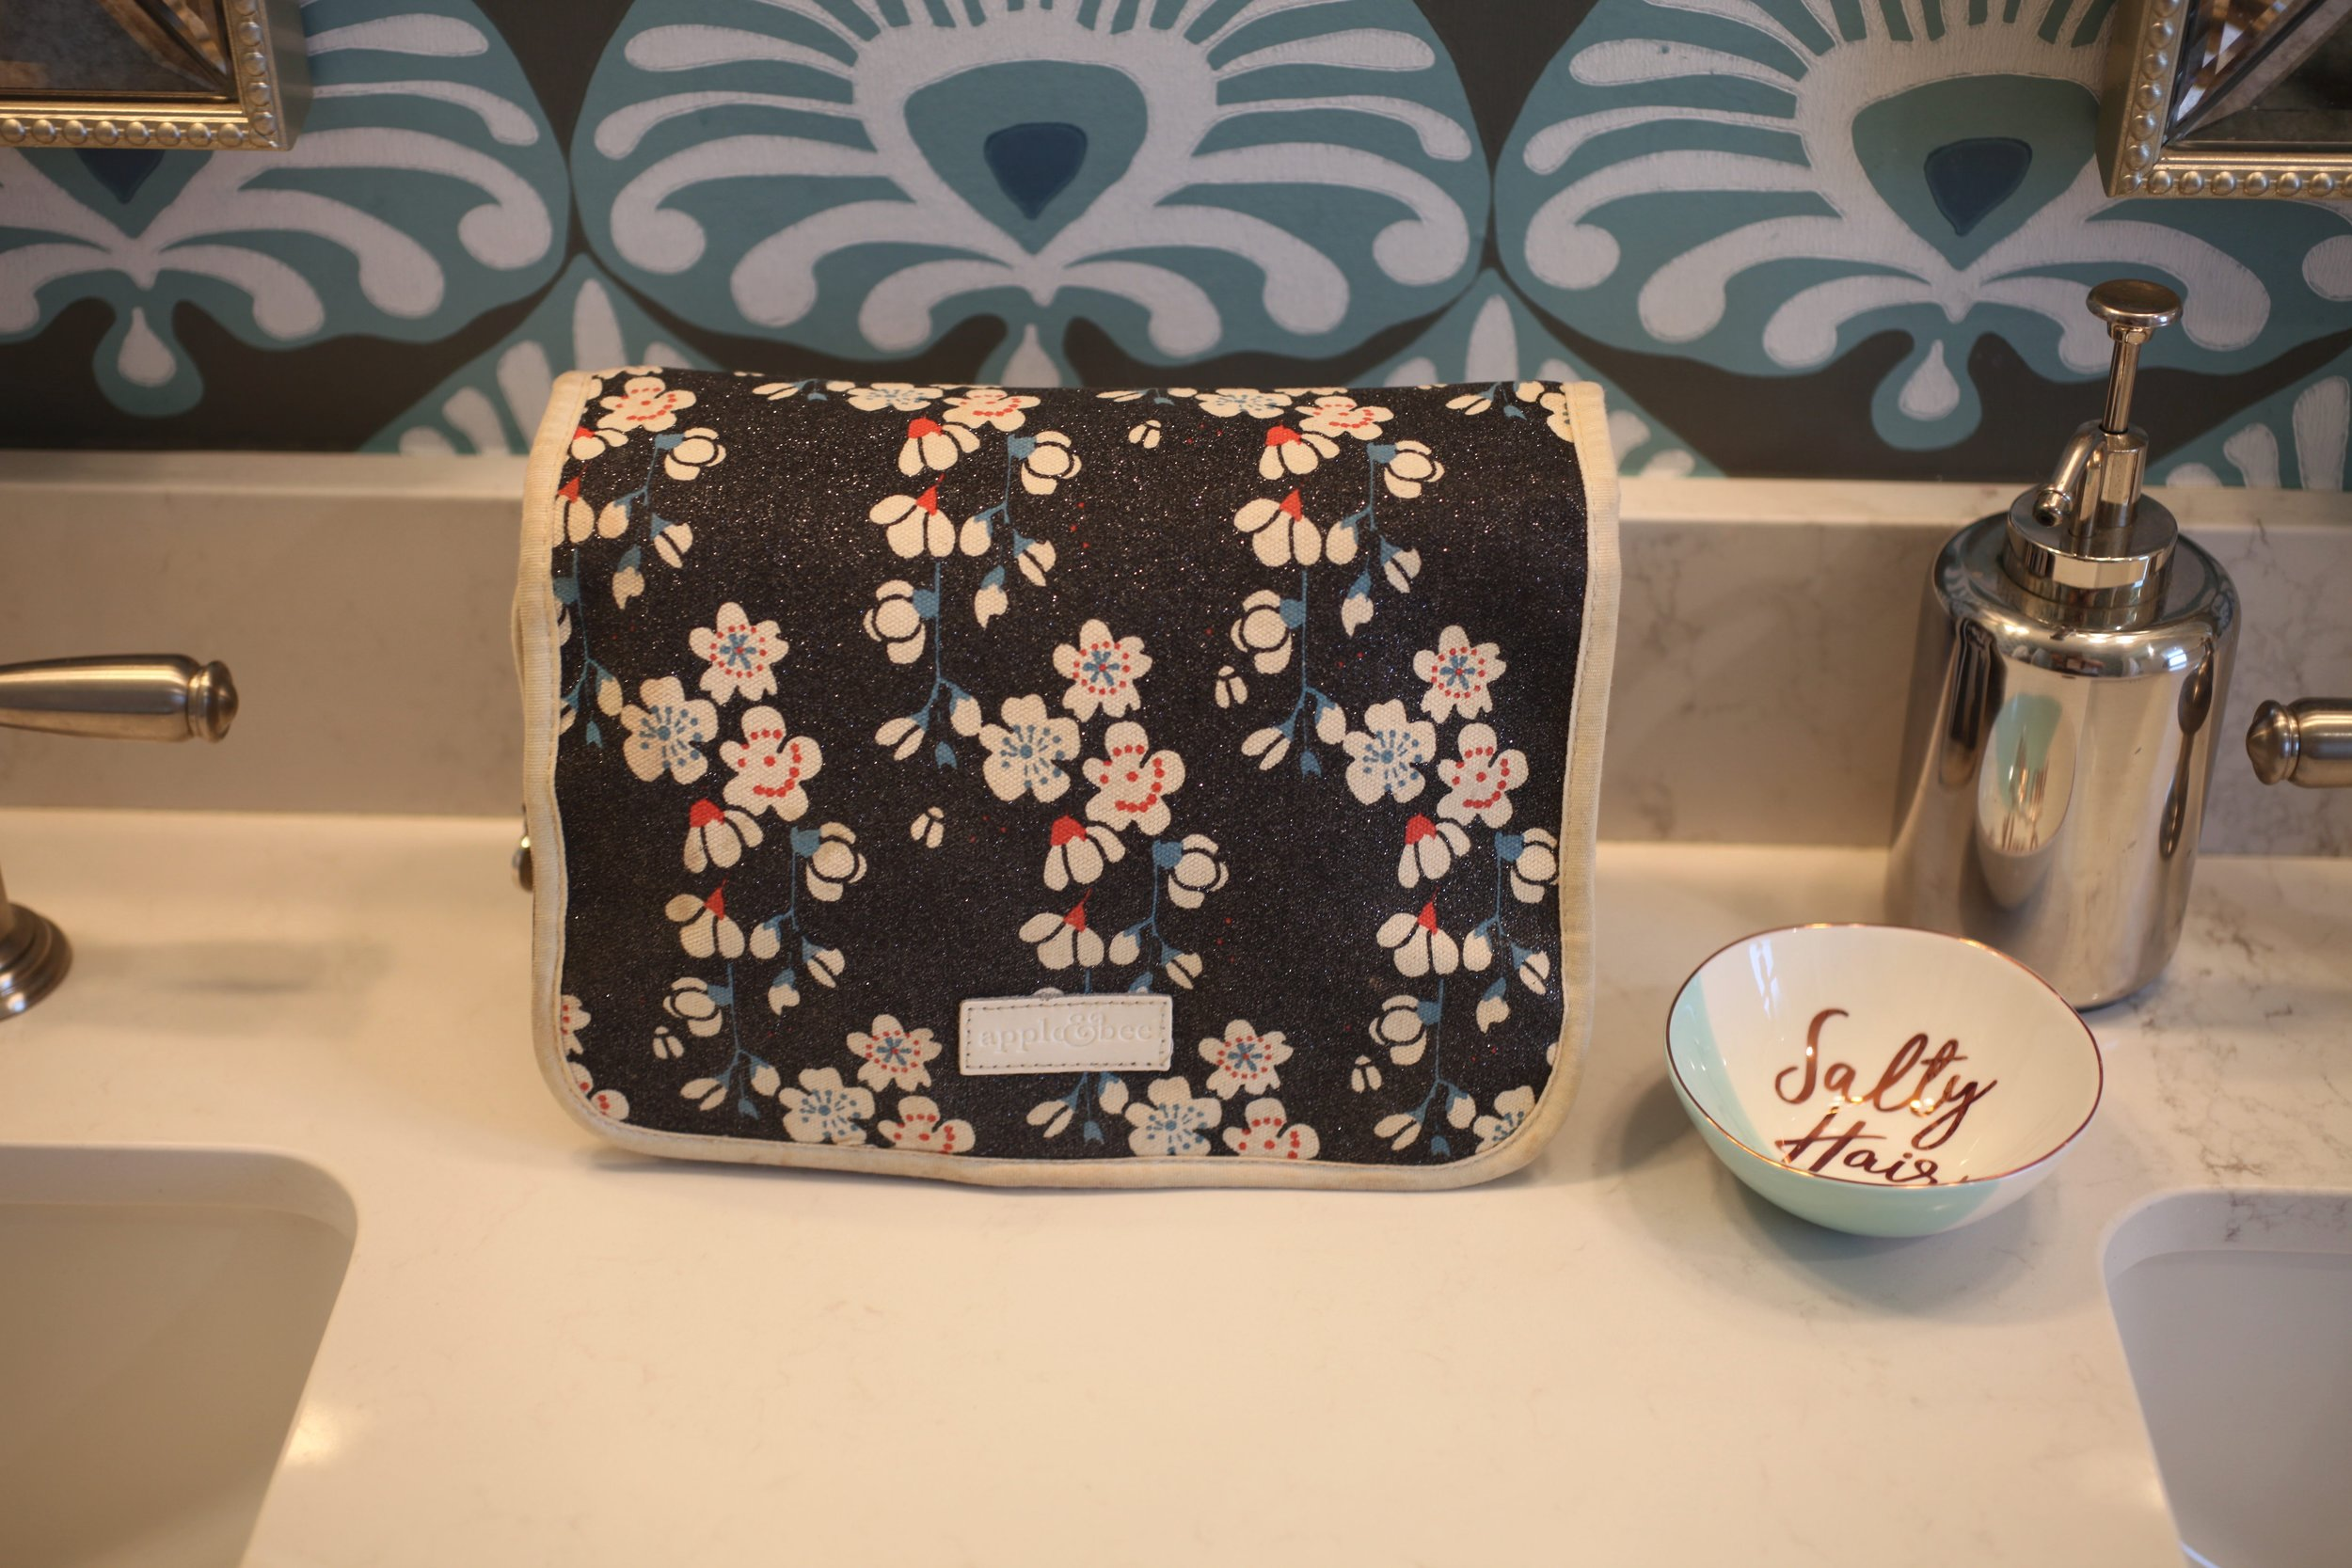 This gal is packed and ready to rock, always! I keep this hanging cosmetic bag stocked to make packing a breeze.